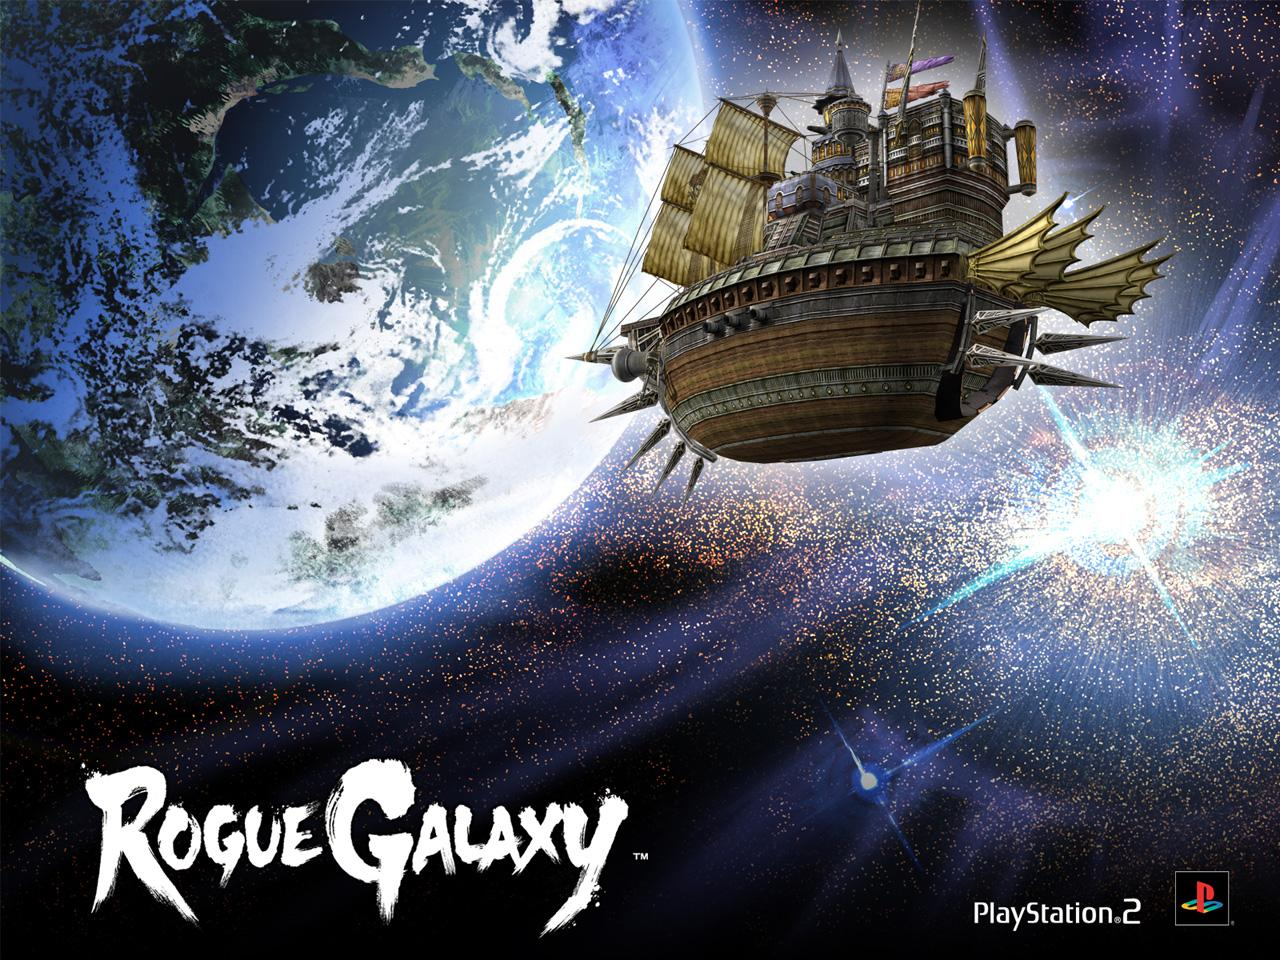 Rogue galaxy herntai cartoon video